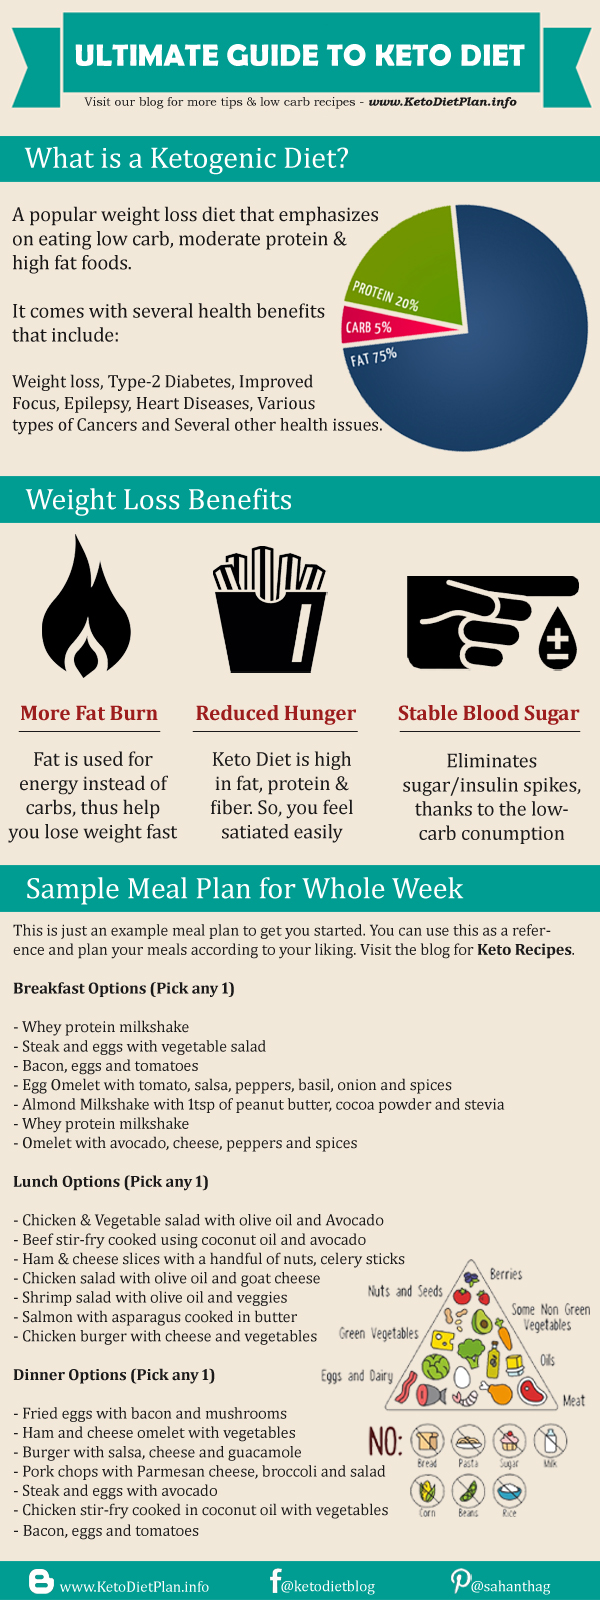 Keto Diet Plan for Beginners: 7 Day Ketogenic Diet Chart for Weight Loss